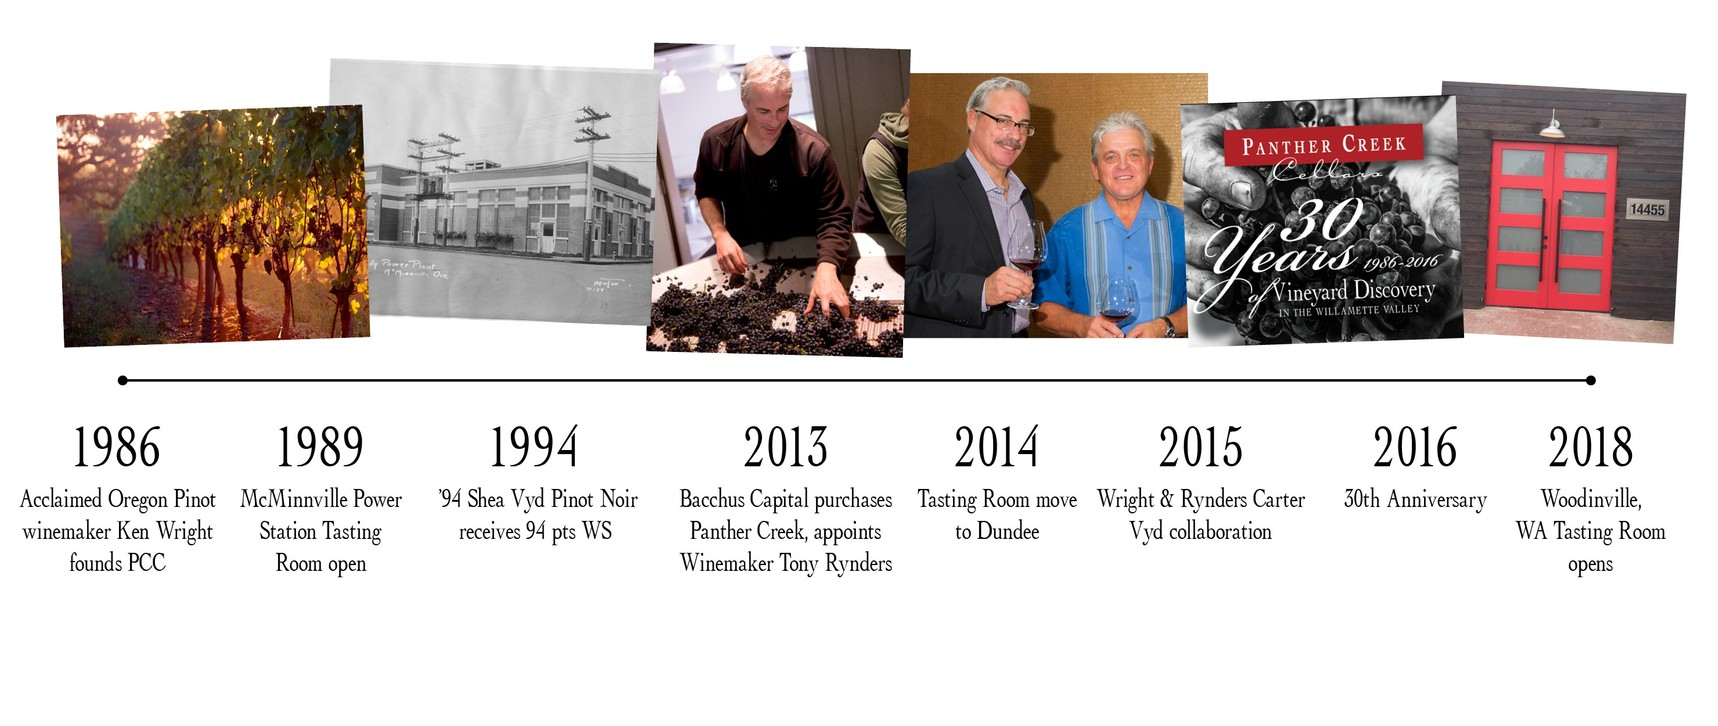 Panther Creek Cellars Timeline Graphic